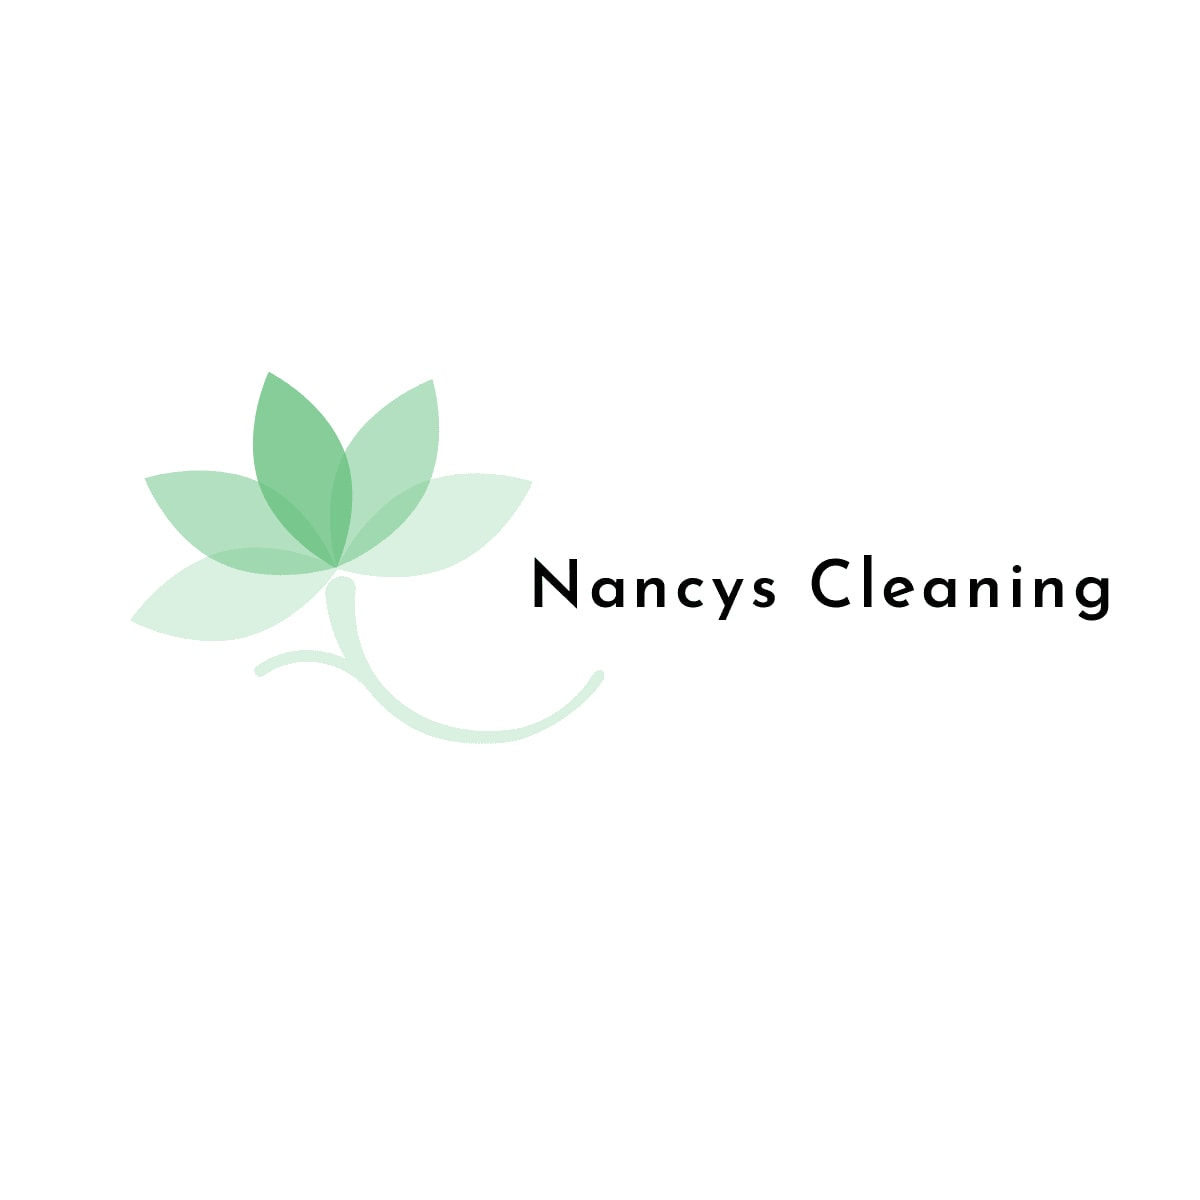 Nancy's Cleaning